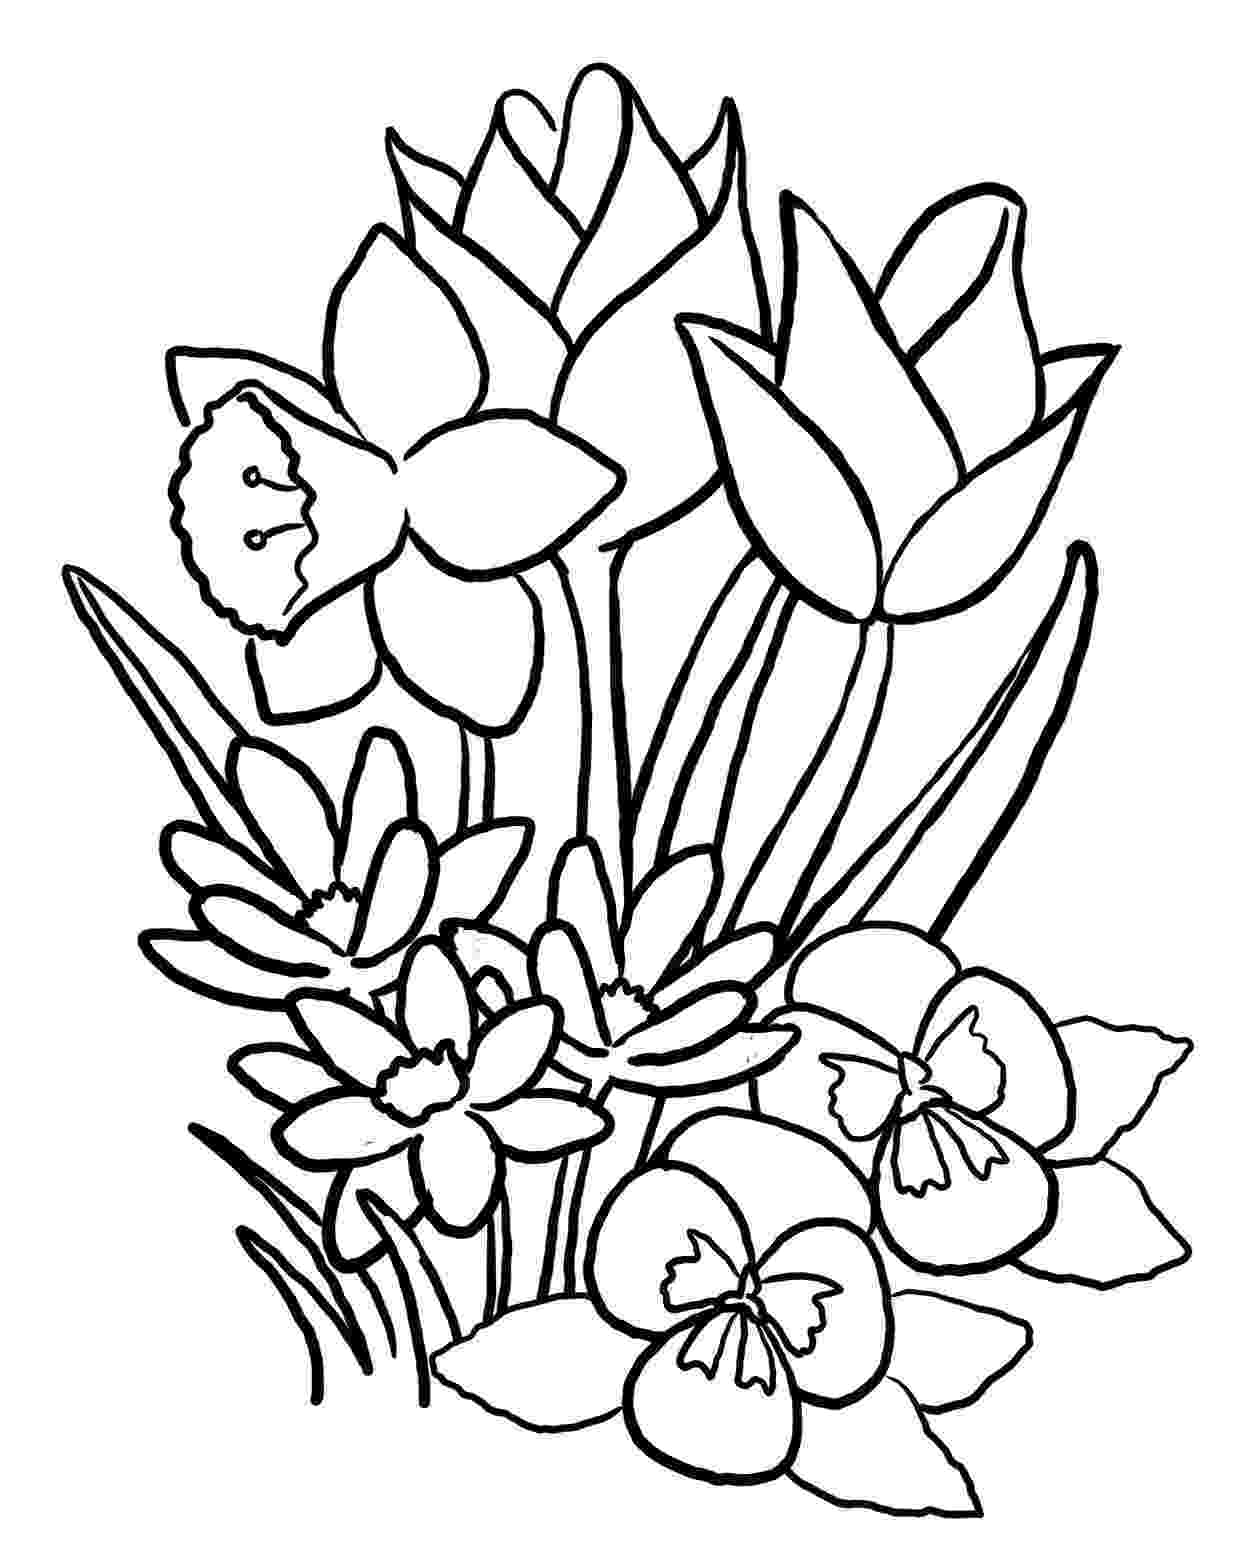 coloring flowers free printable flower coloring pages for kids best flowers coloring 1 3